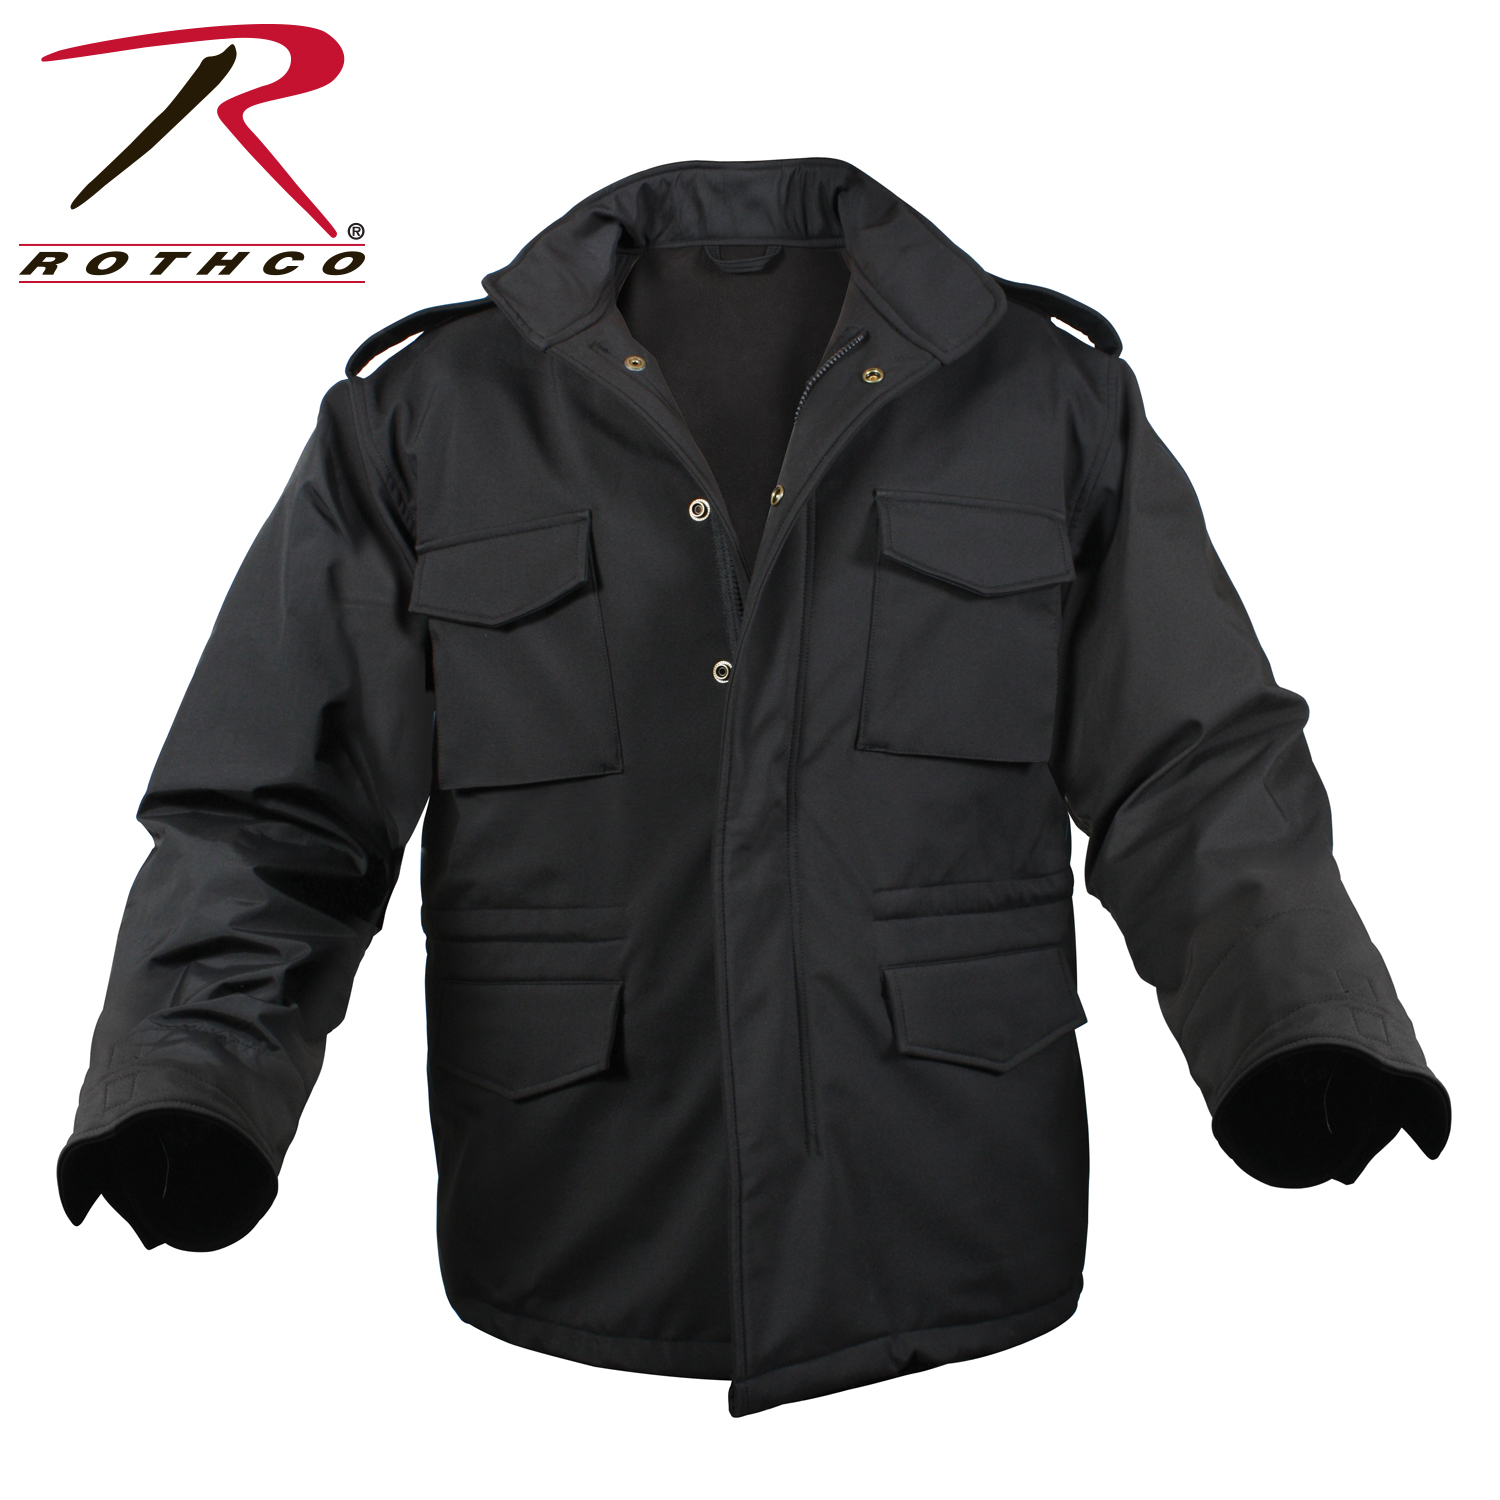 Rothco Soft Shell Tactical M 65 Field Jacket